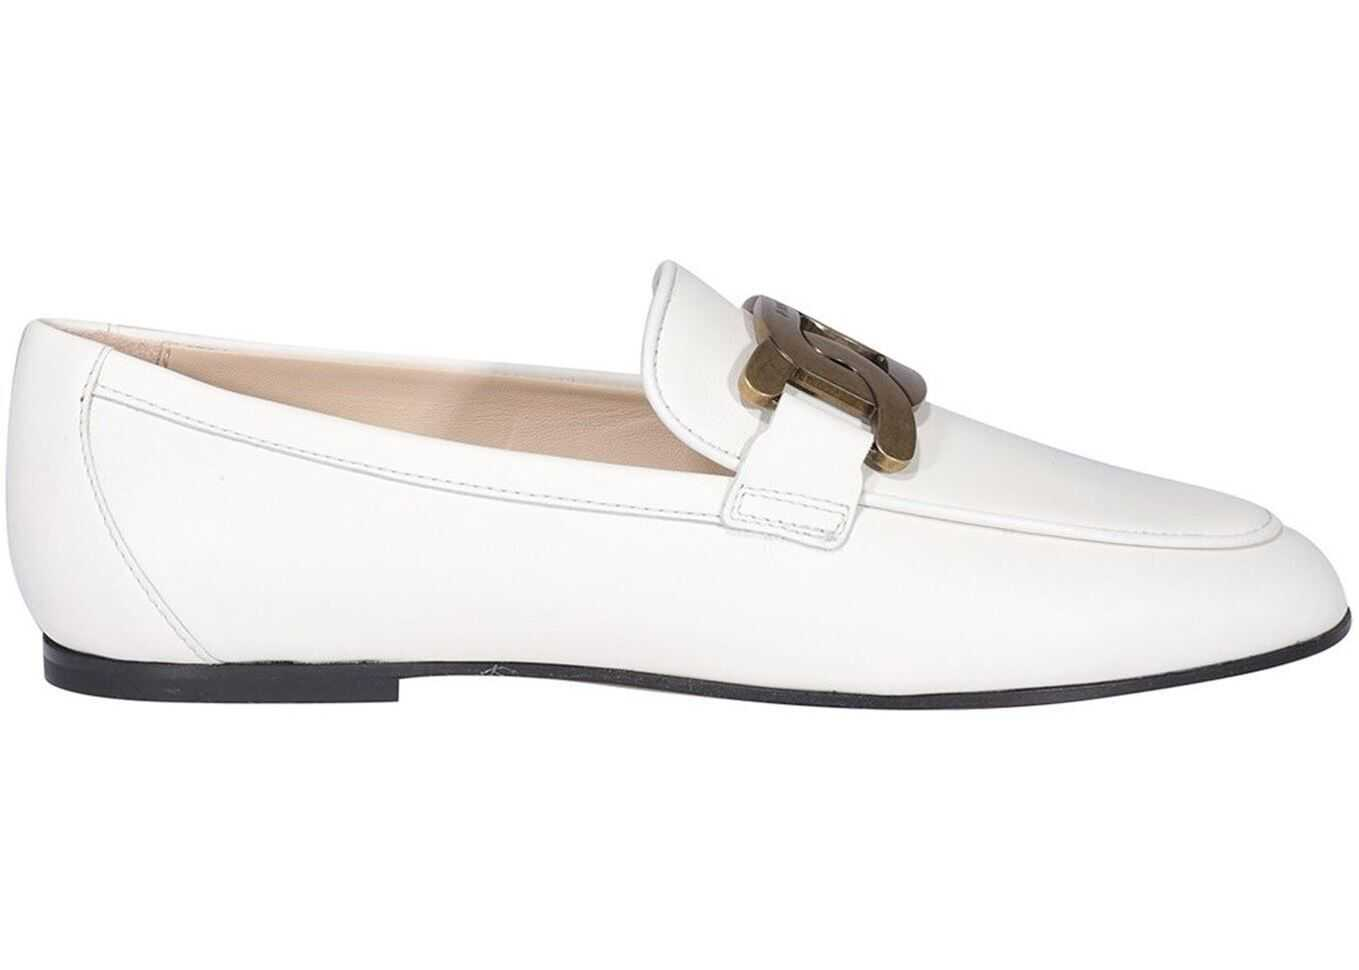 TOD'S Kate Loafers In White XXW79A0DD00MIDB001 White imagine b-mall.ro